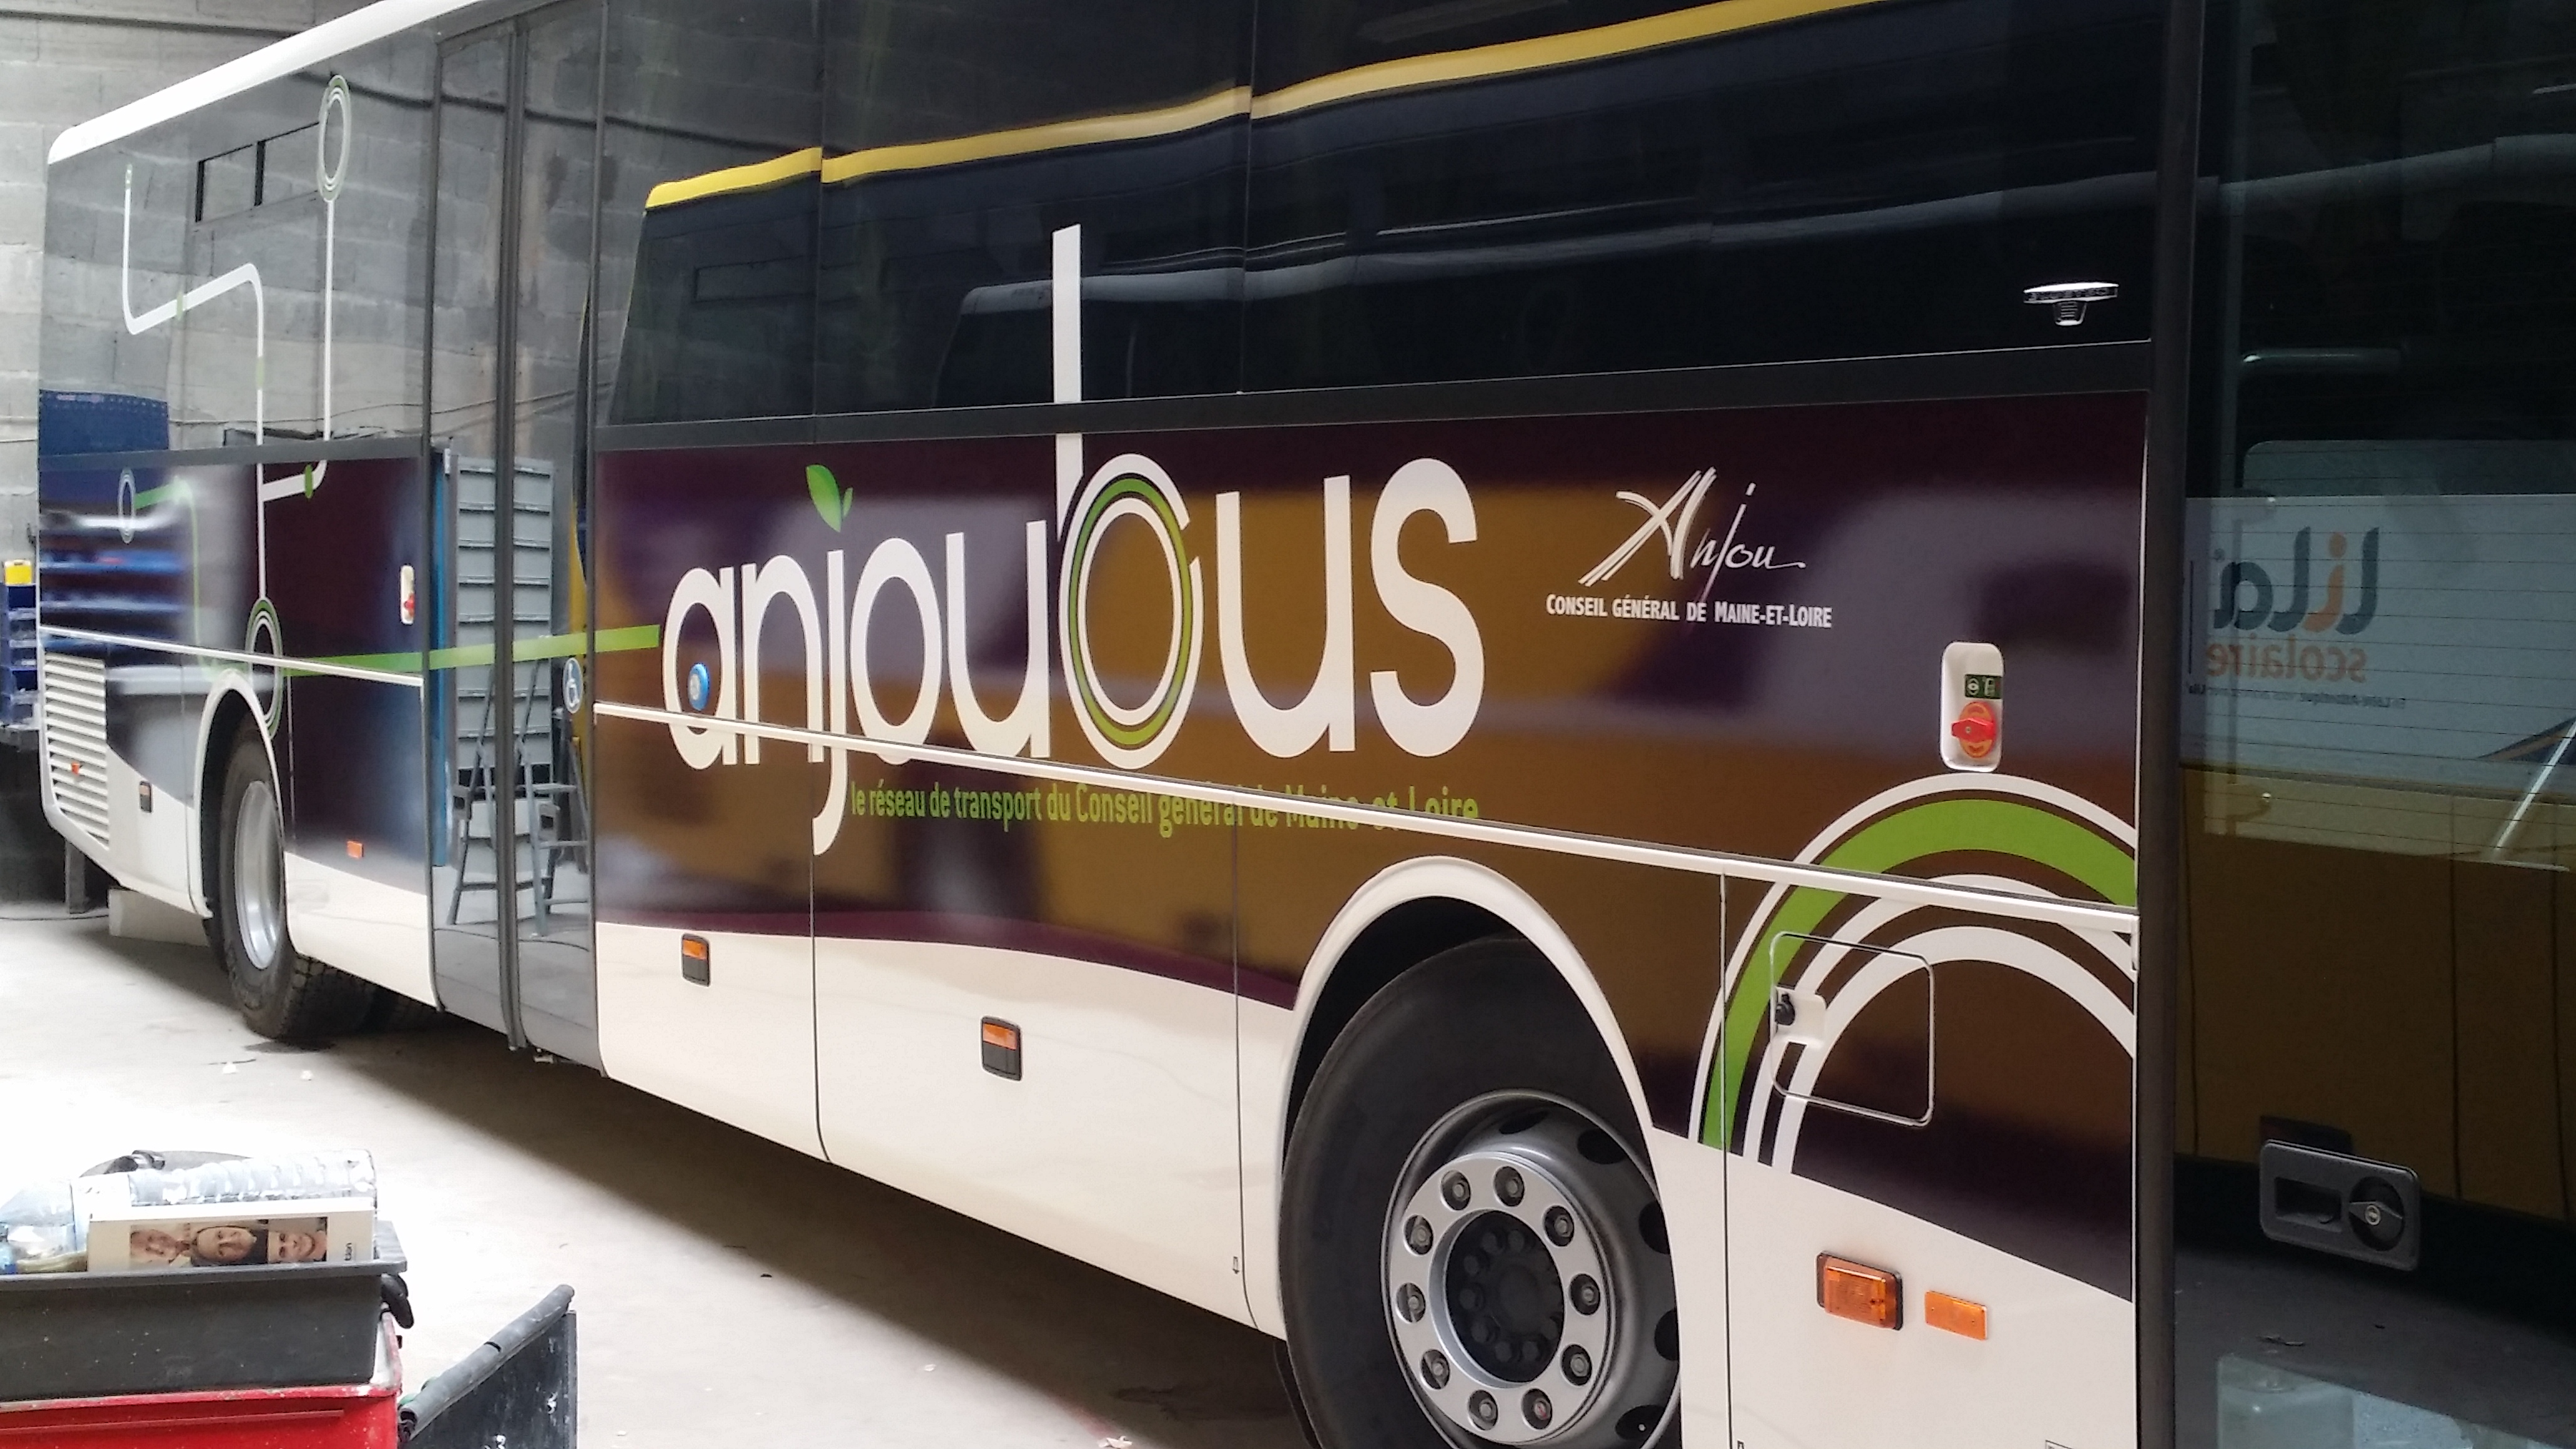 Covering AnjouBus Mercedes Intouro